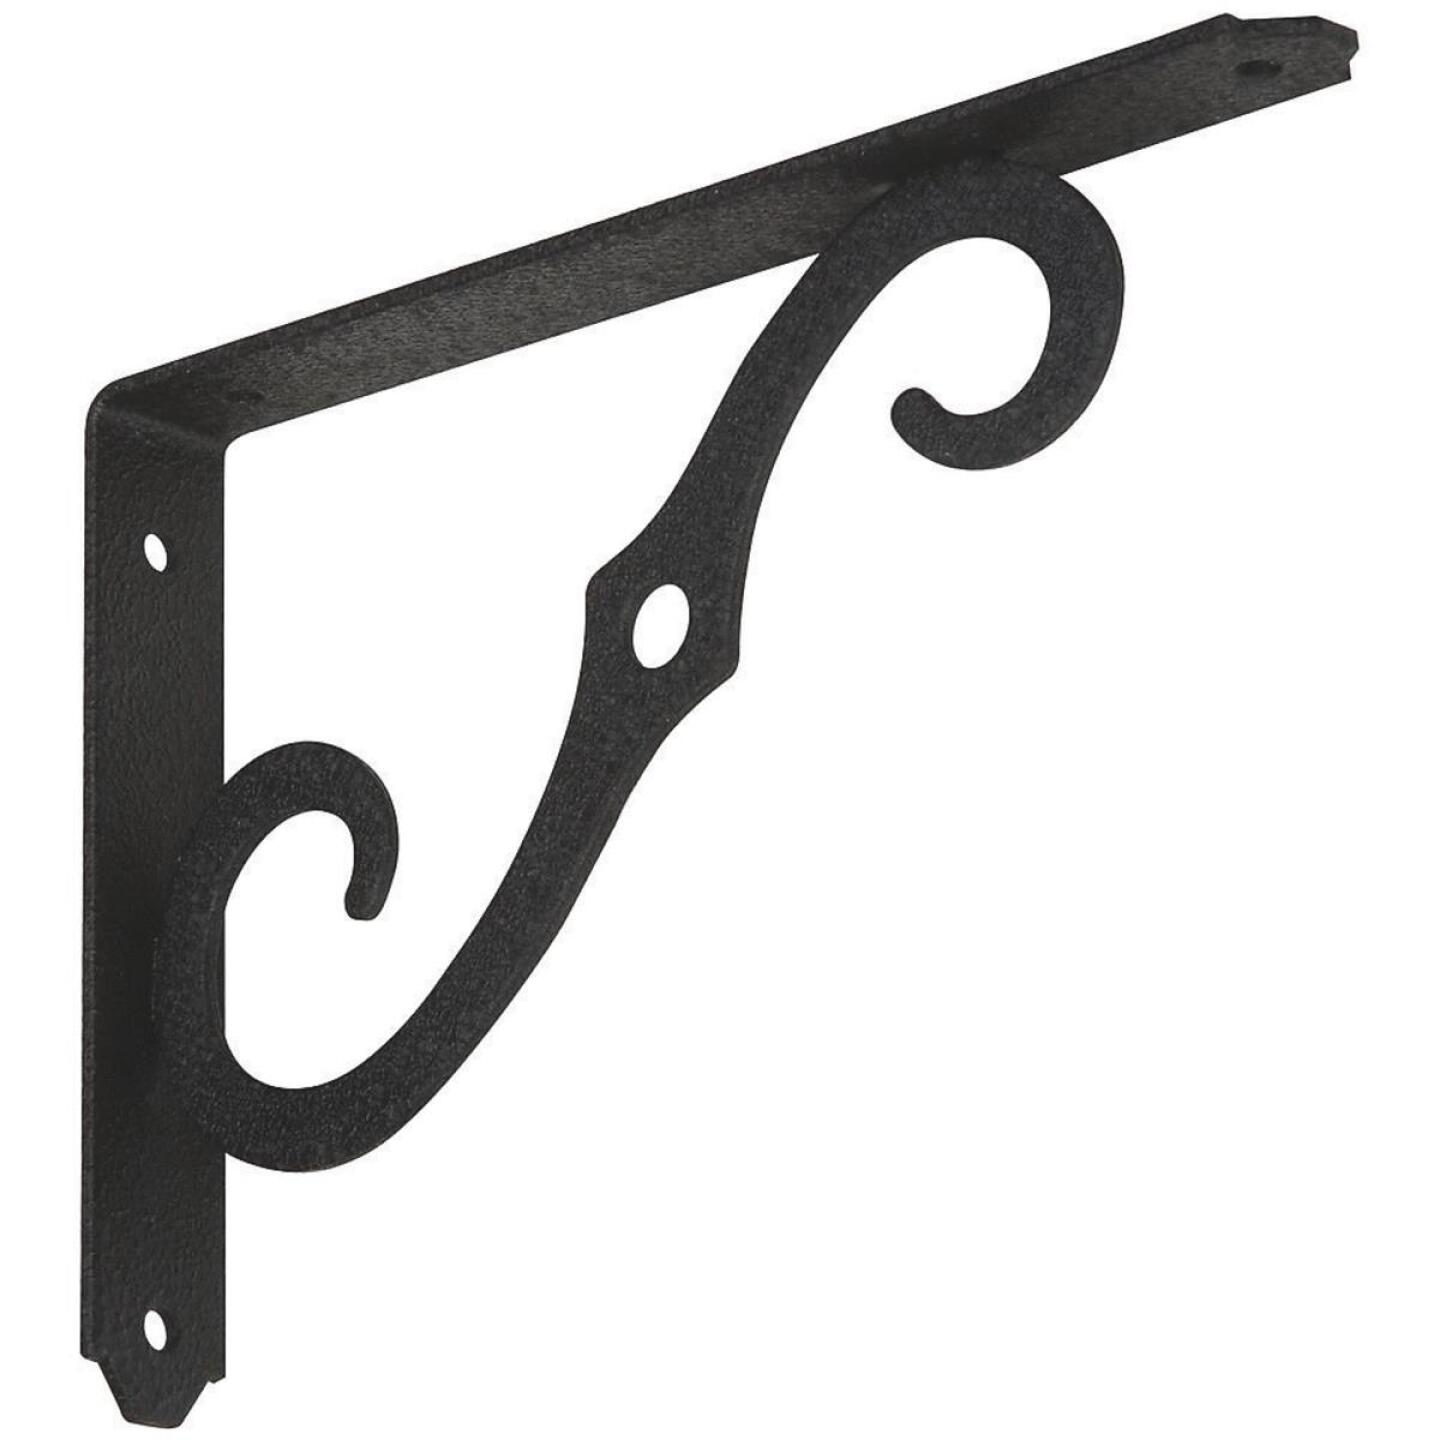 National 152 8 In. D. x 5-1/2 In. H. Black Steel Ornamental Shelf Bracket/Plant Hanger Image 1